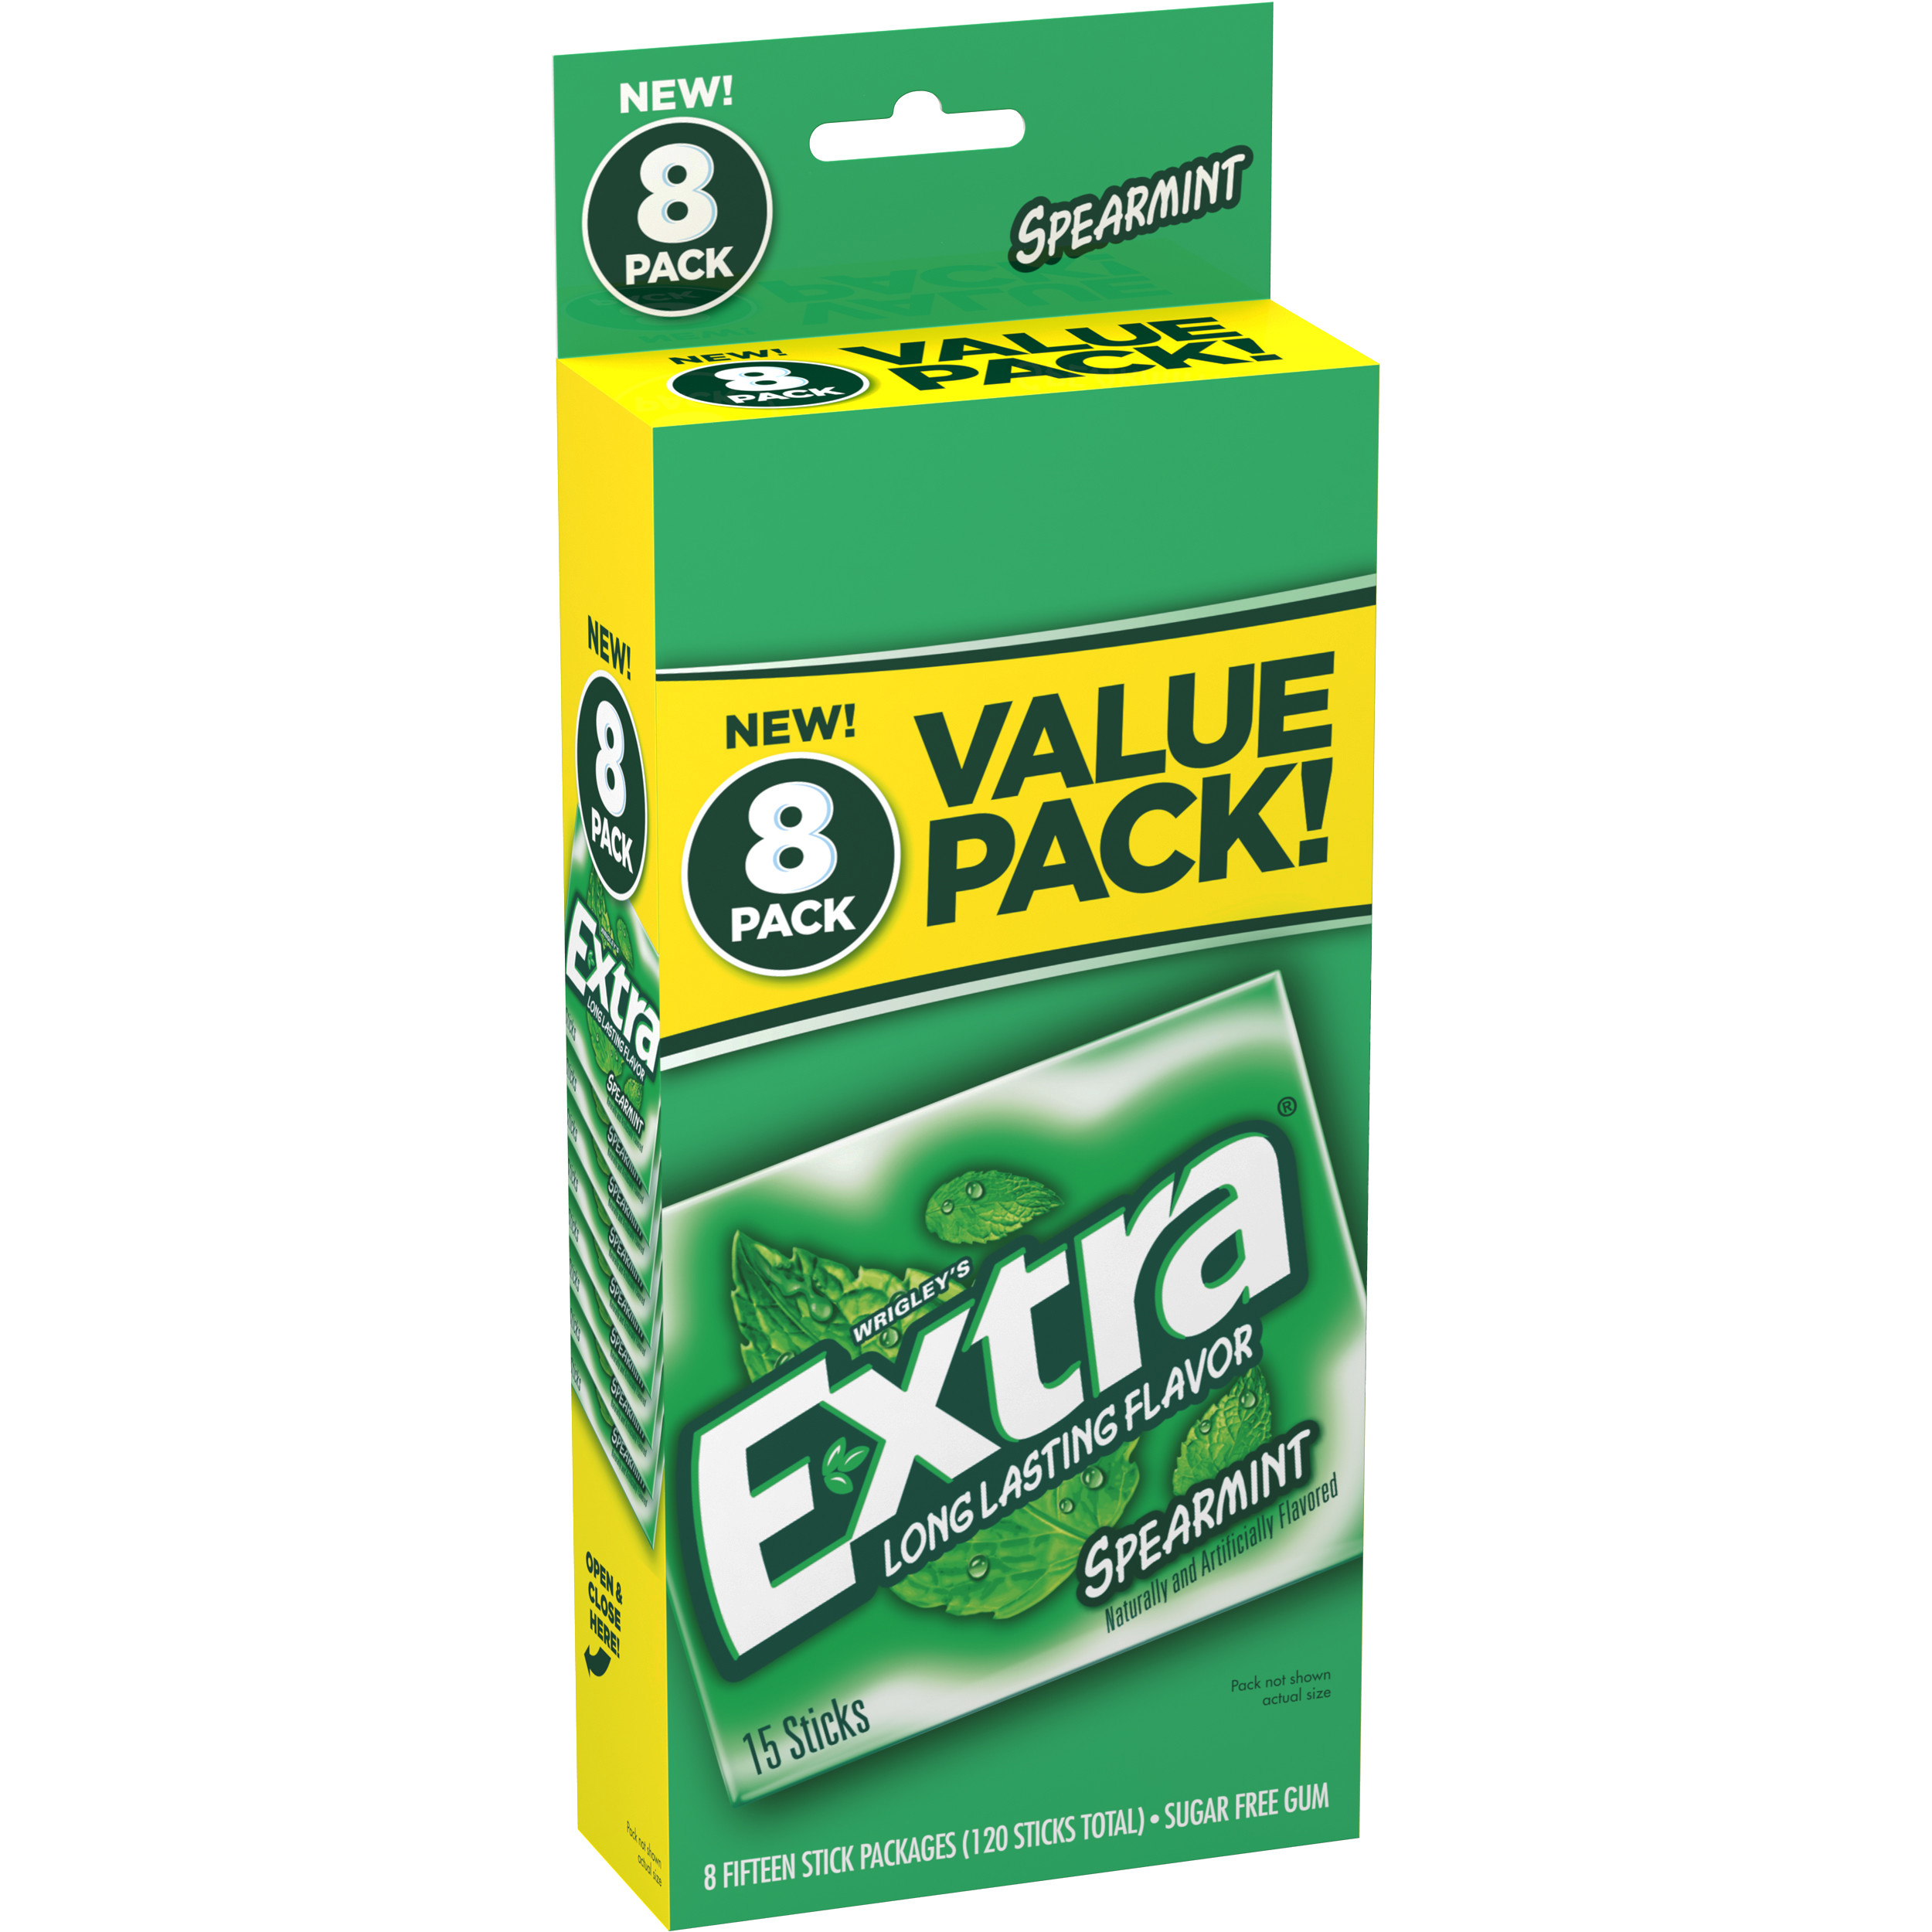 Extra Spearmint Sugarfree Gum, value pack (8 packs total)